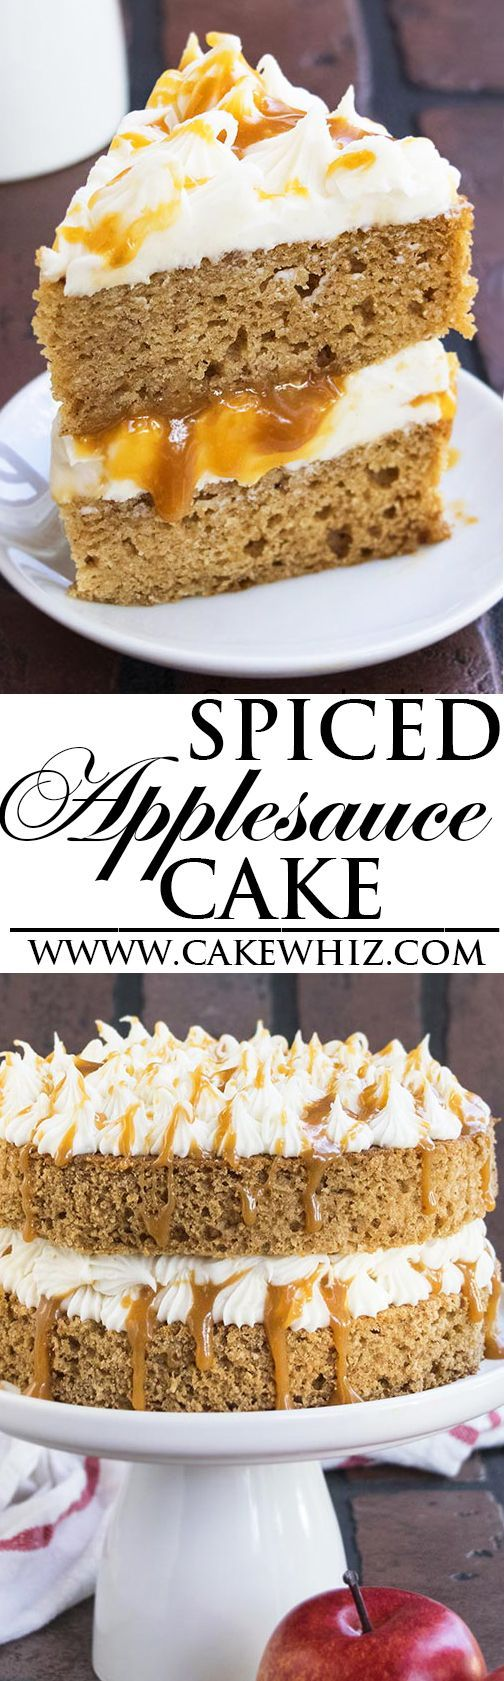 This EASY SPICED APPLESAUCE CAKE with caramel sauce and cream cheese frosting is super soft and moist. Perfect old fashioned spice cake recipe for Fall and Thanksgiving parties! From http://cakewhiz.com